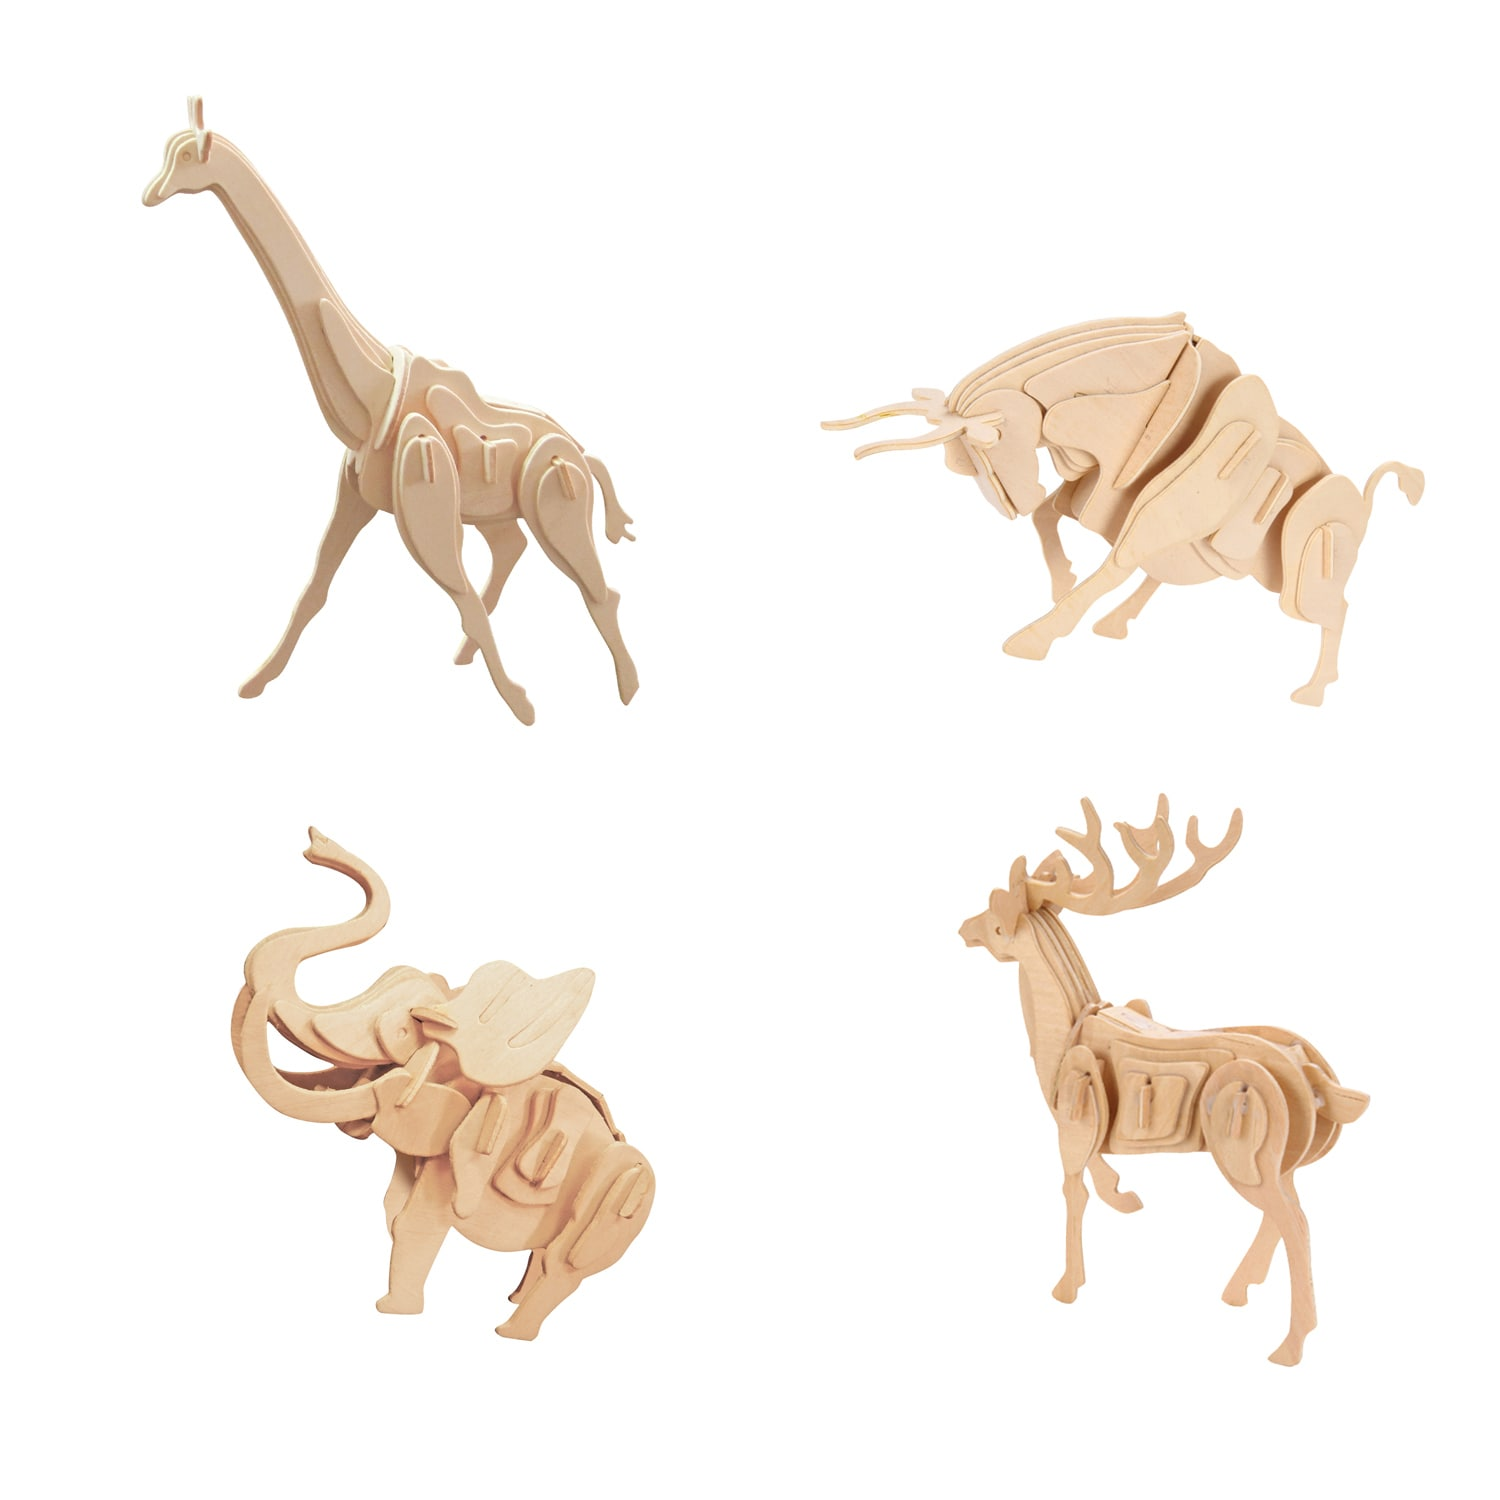 Smithsonian 3D Wooden Wild Animal Puzzle 4 Pack (4Pk Smit...